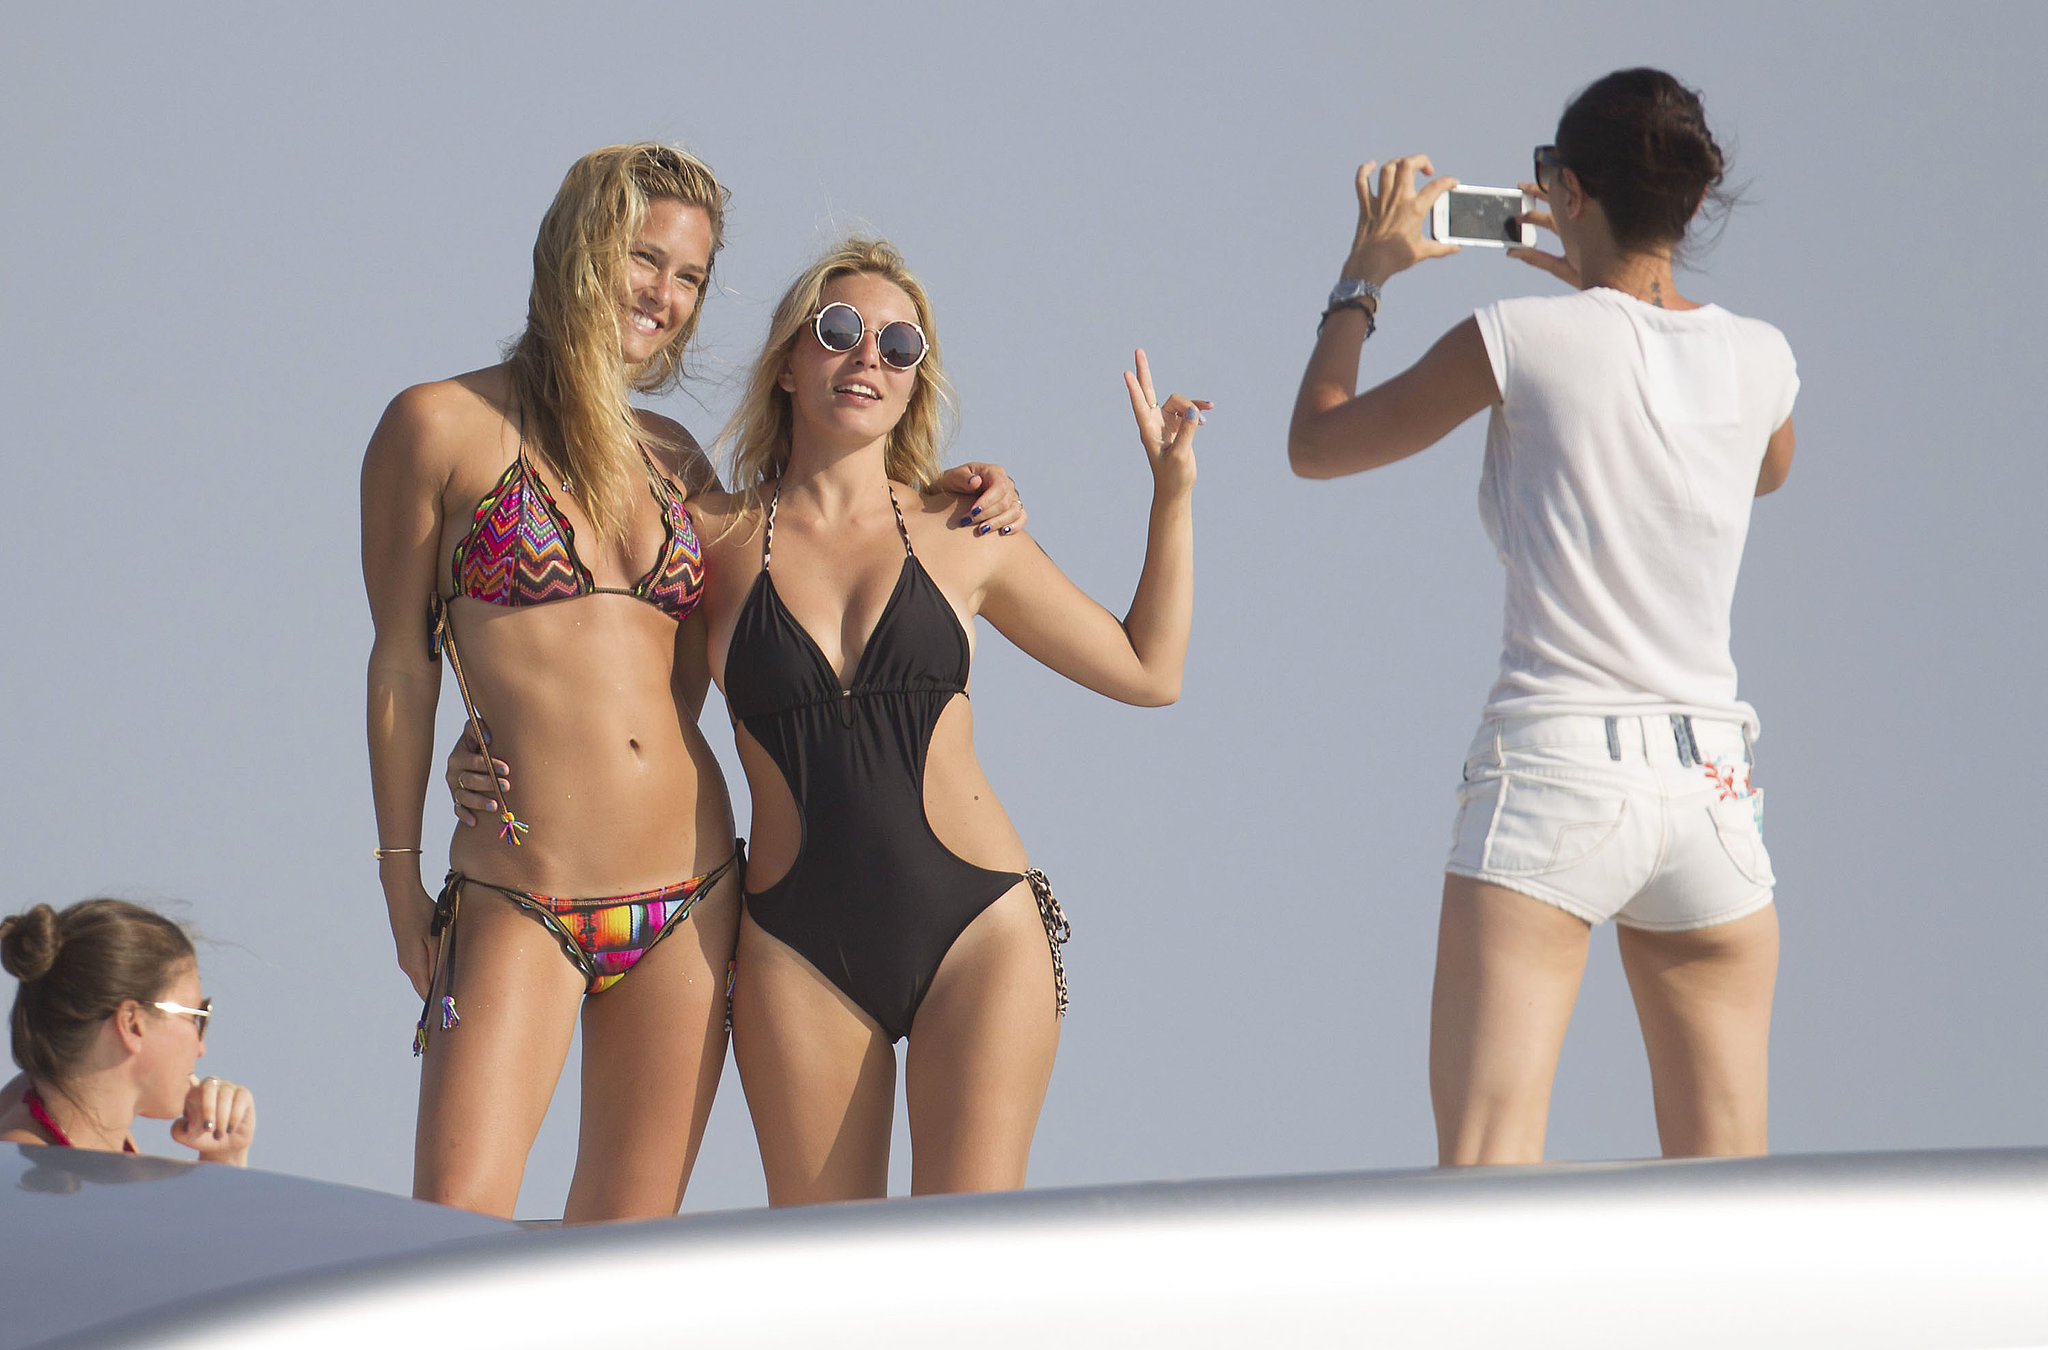 Bar Refaeli and her friend posed for photos.